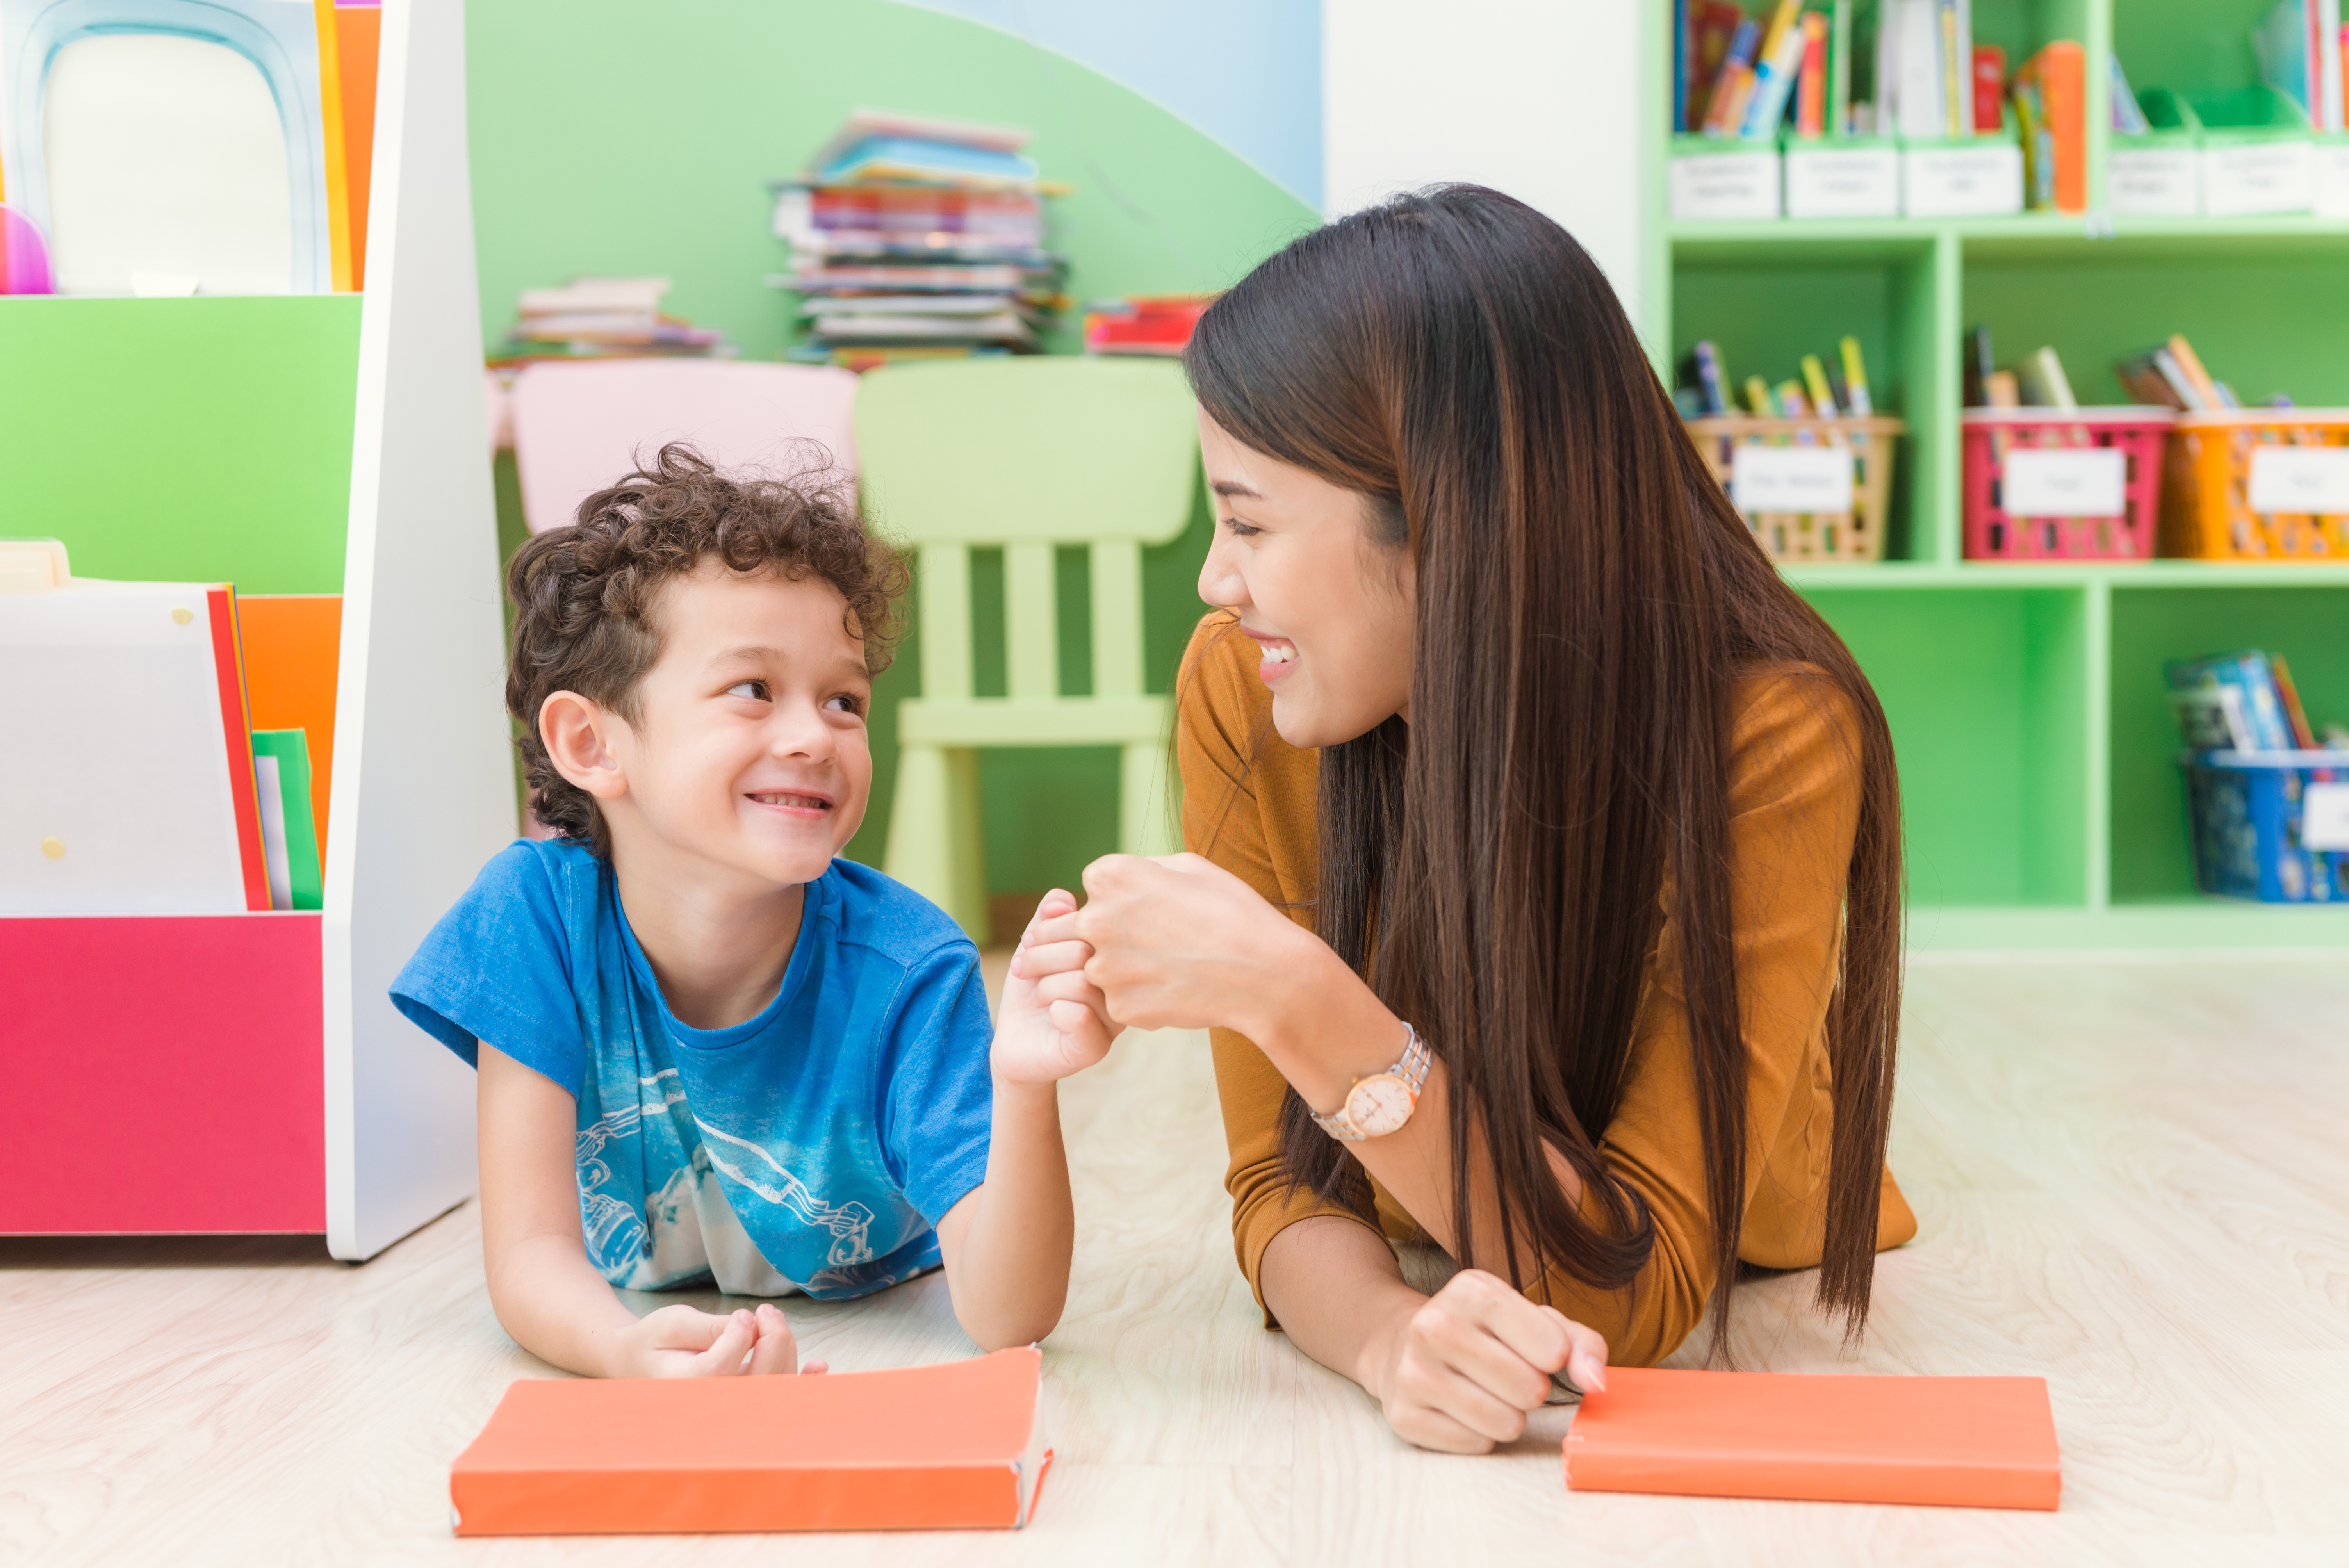 Young cheerful woman teacher teaching playful kid at colorful classroom.